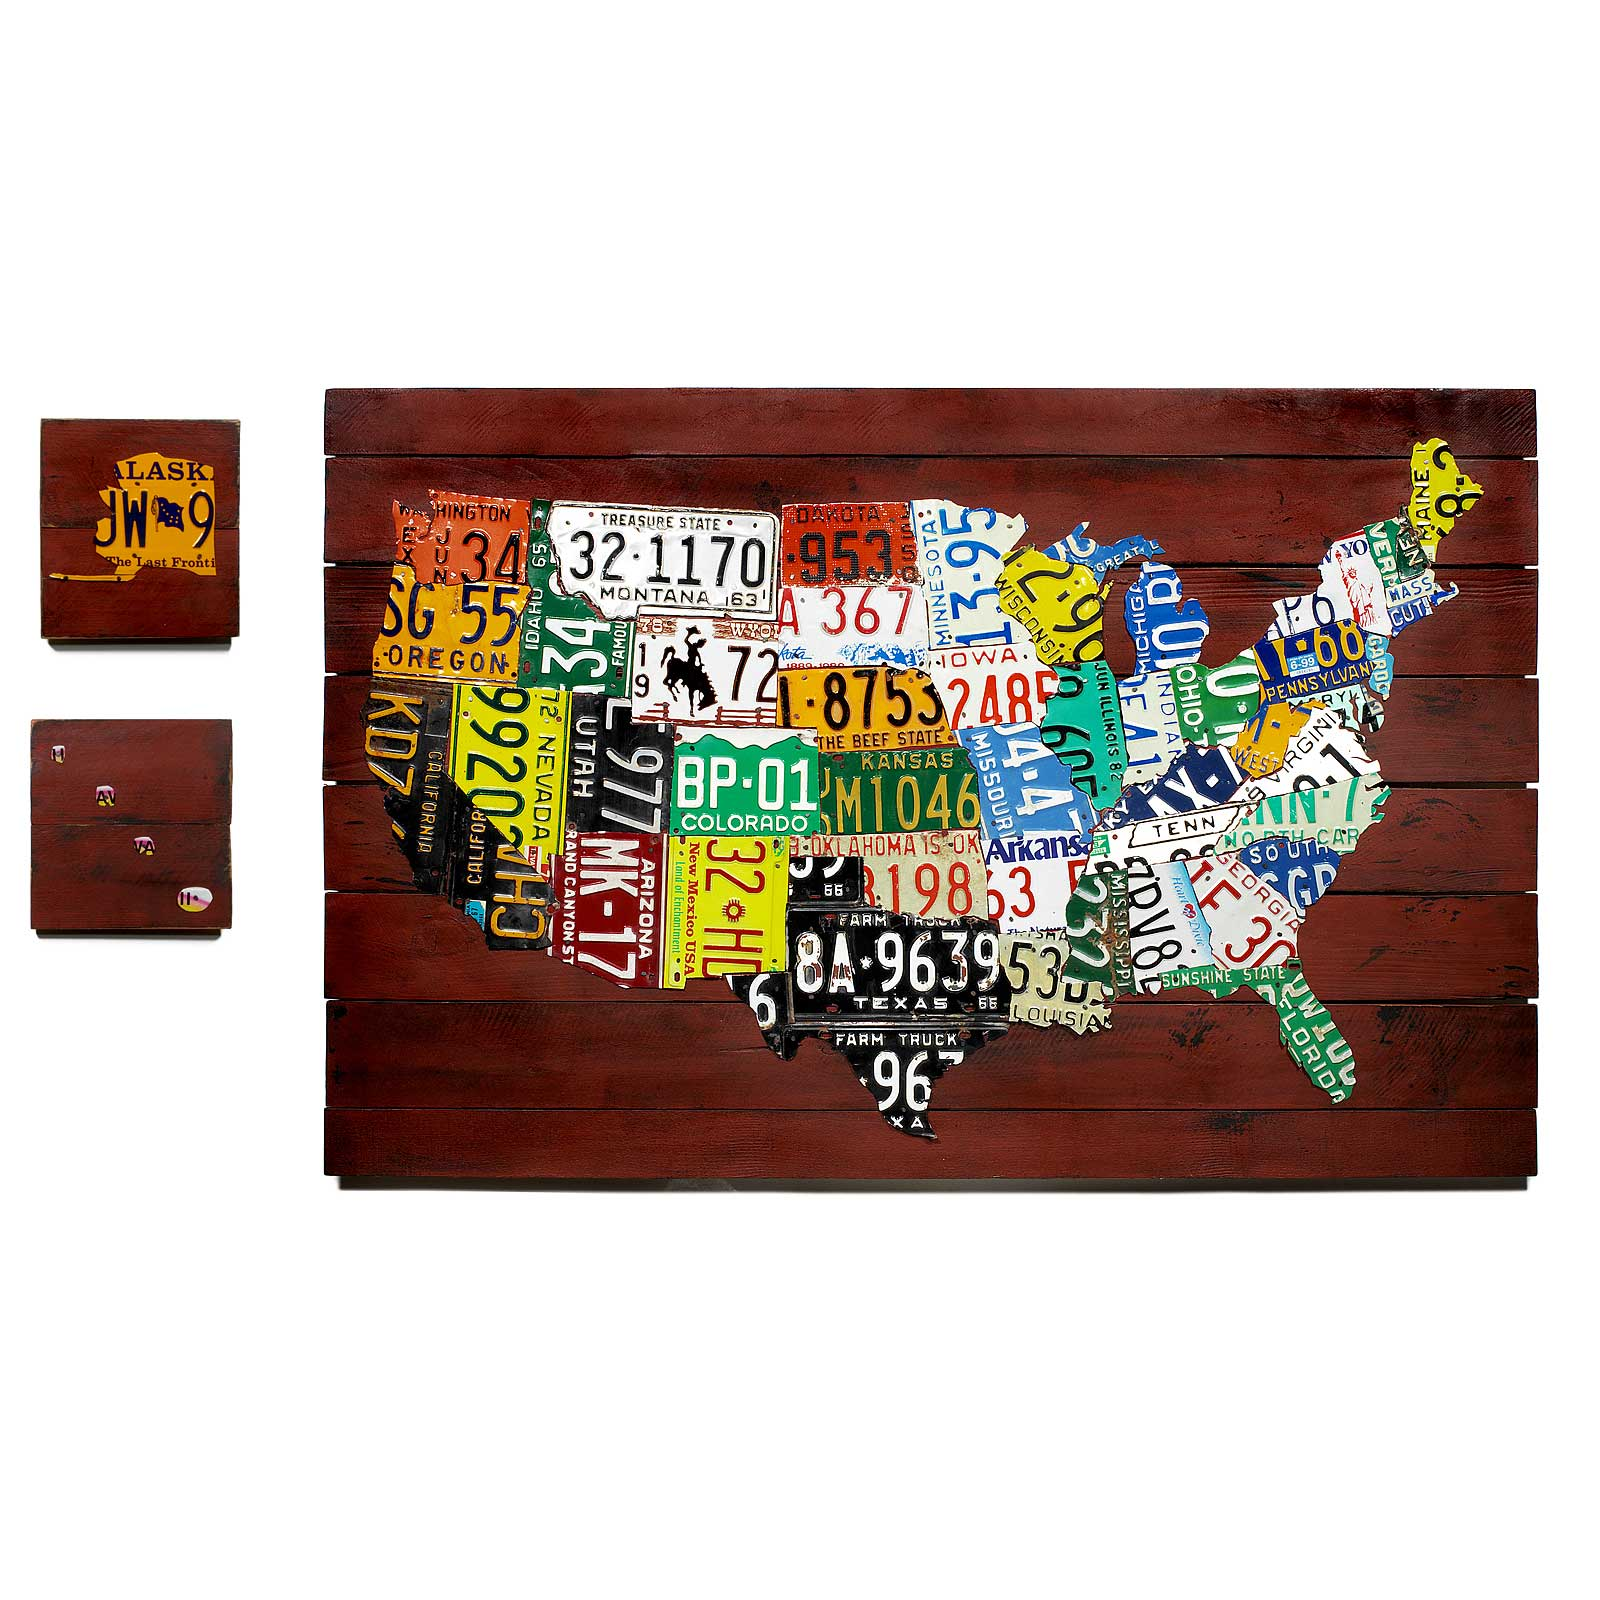 Reclaimed License Plate Map | Decorative US License Plate ... on license plate world map, map usa map, color usa map, leapfrog interactive united states map, flag usa map, basketball usa map, baseball usa map, paint usa map, golf usa map, motorcycle usa map, driving usa map, decals usa map, watercolor usa map, art usa map, reverse usa map, list 50 states and capitals map, state usa map, time usa map, license plate map art, license plates for each state,